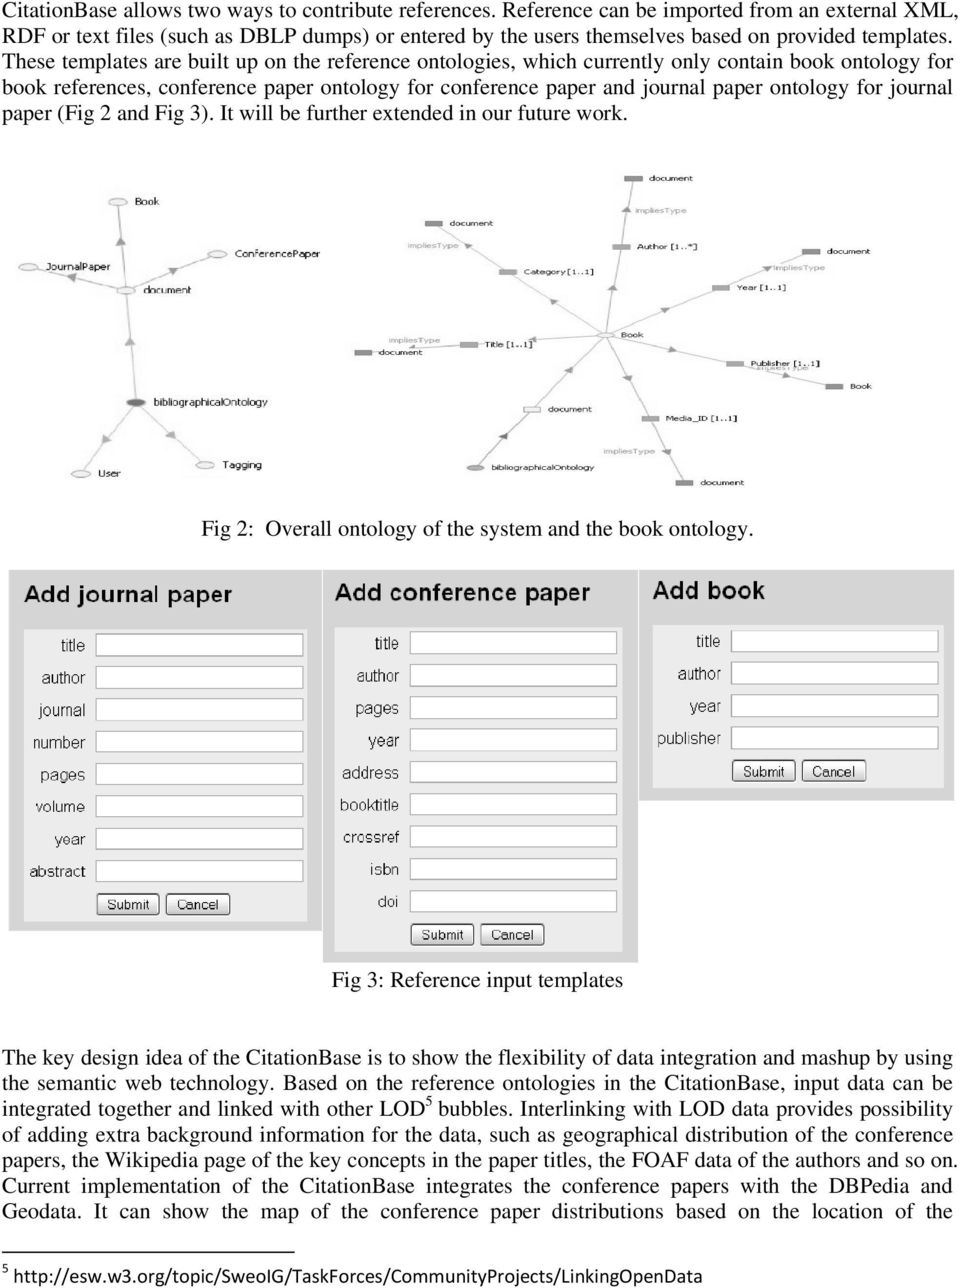 These templates are built up on the reference ontologies, which currently only contain book ontology for book references, conference paper ontology for conference paper and journal paper ontology for